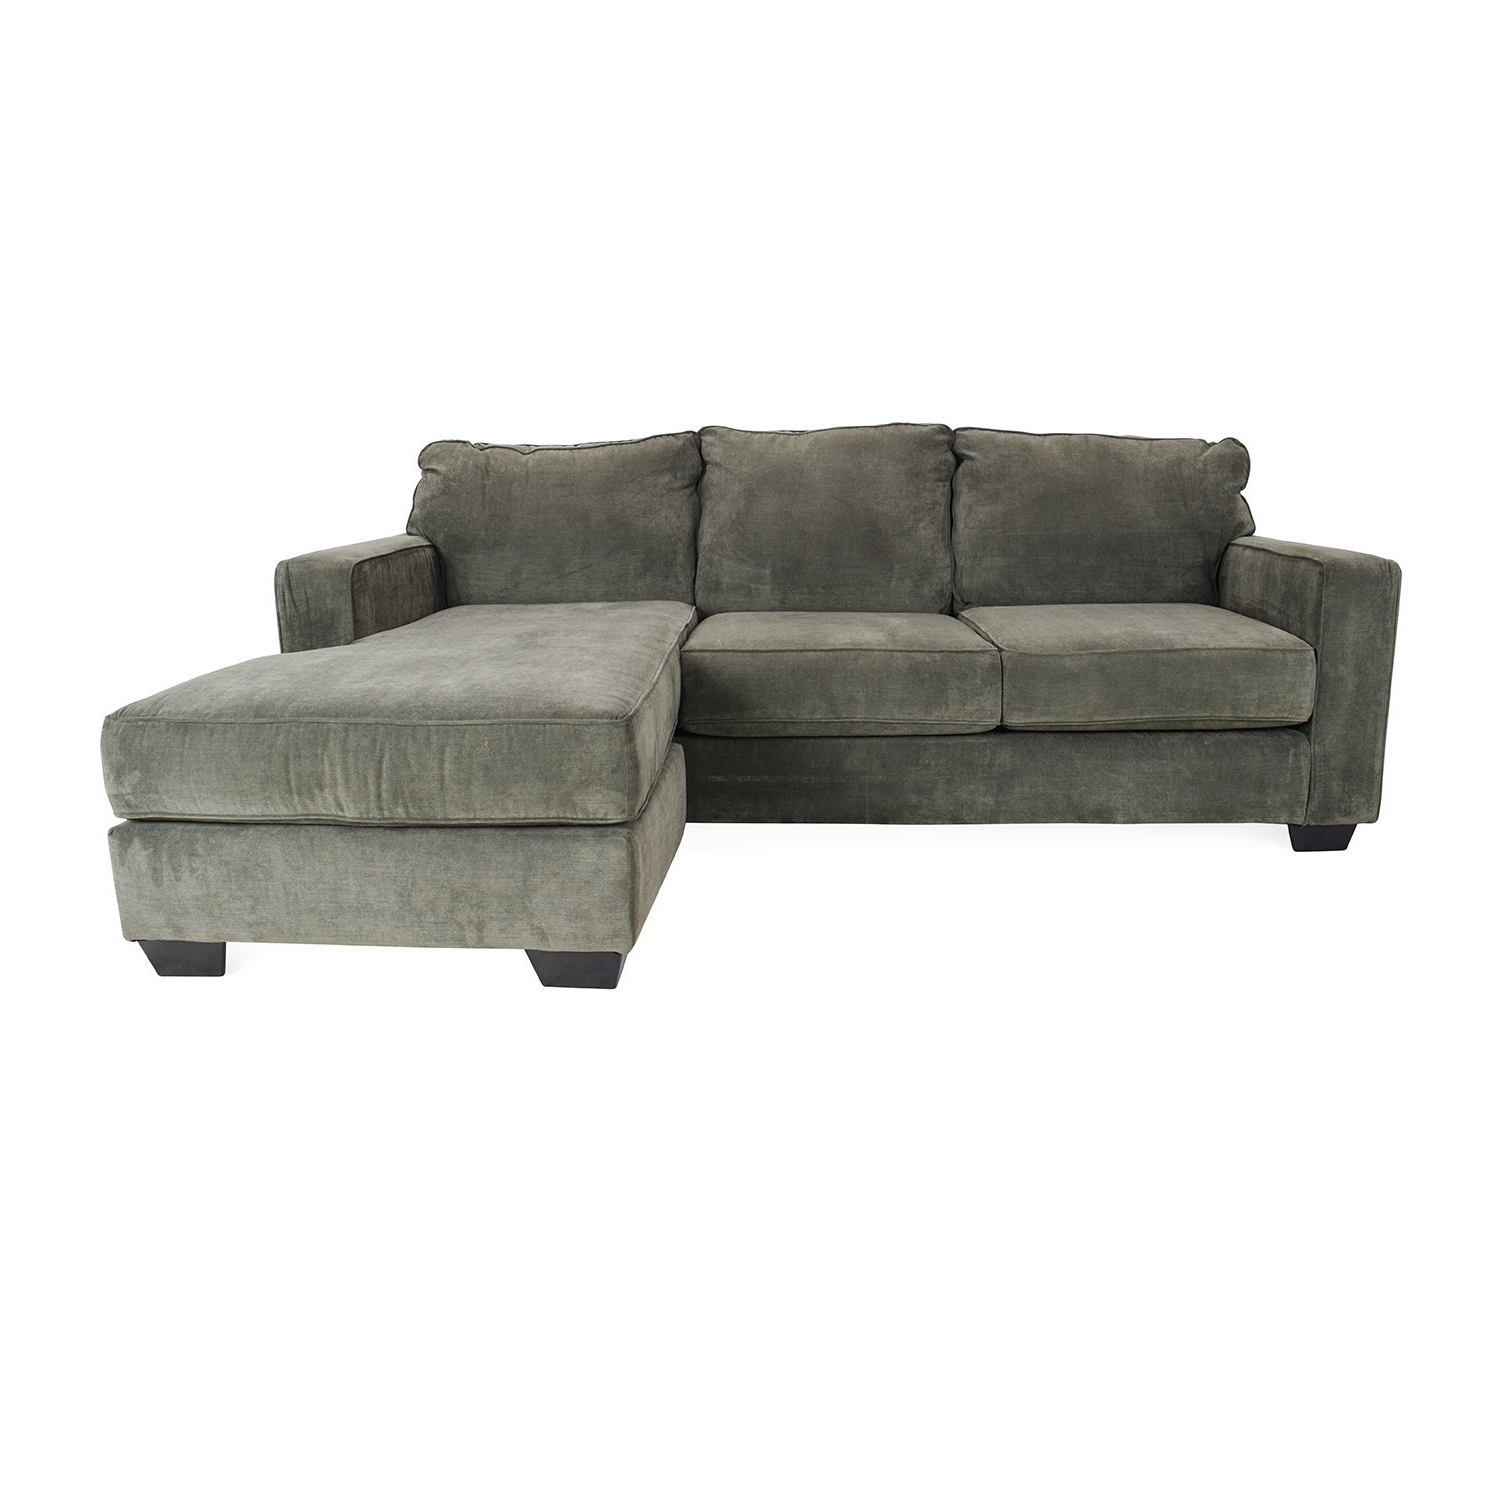 [%54% Off – Jennifer Convertibles Jennifer Convertibles Sectional Intended For Latest Jennifer Sofas|Jennifer Sofas Inside Widely Used 54% Off – Jennifer Convertibles Jennifer Convertibles Sectional|Well Liked Jennifer Sofas Pertaining To 54% Off – Jennifer Convertibles Jennifer Convertibles Sectional|Favorite 54% Off – Jennifer Convertibles Jennifer Convertibles Sectional With Jennifer Sofas%] (View 5 of 15)